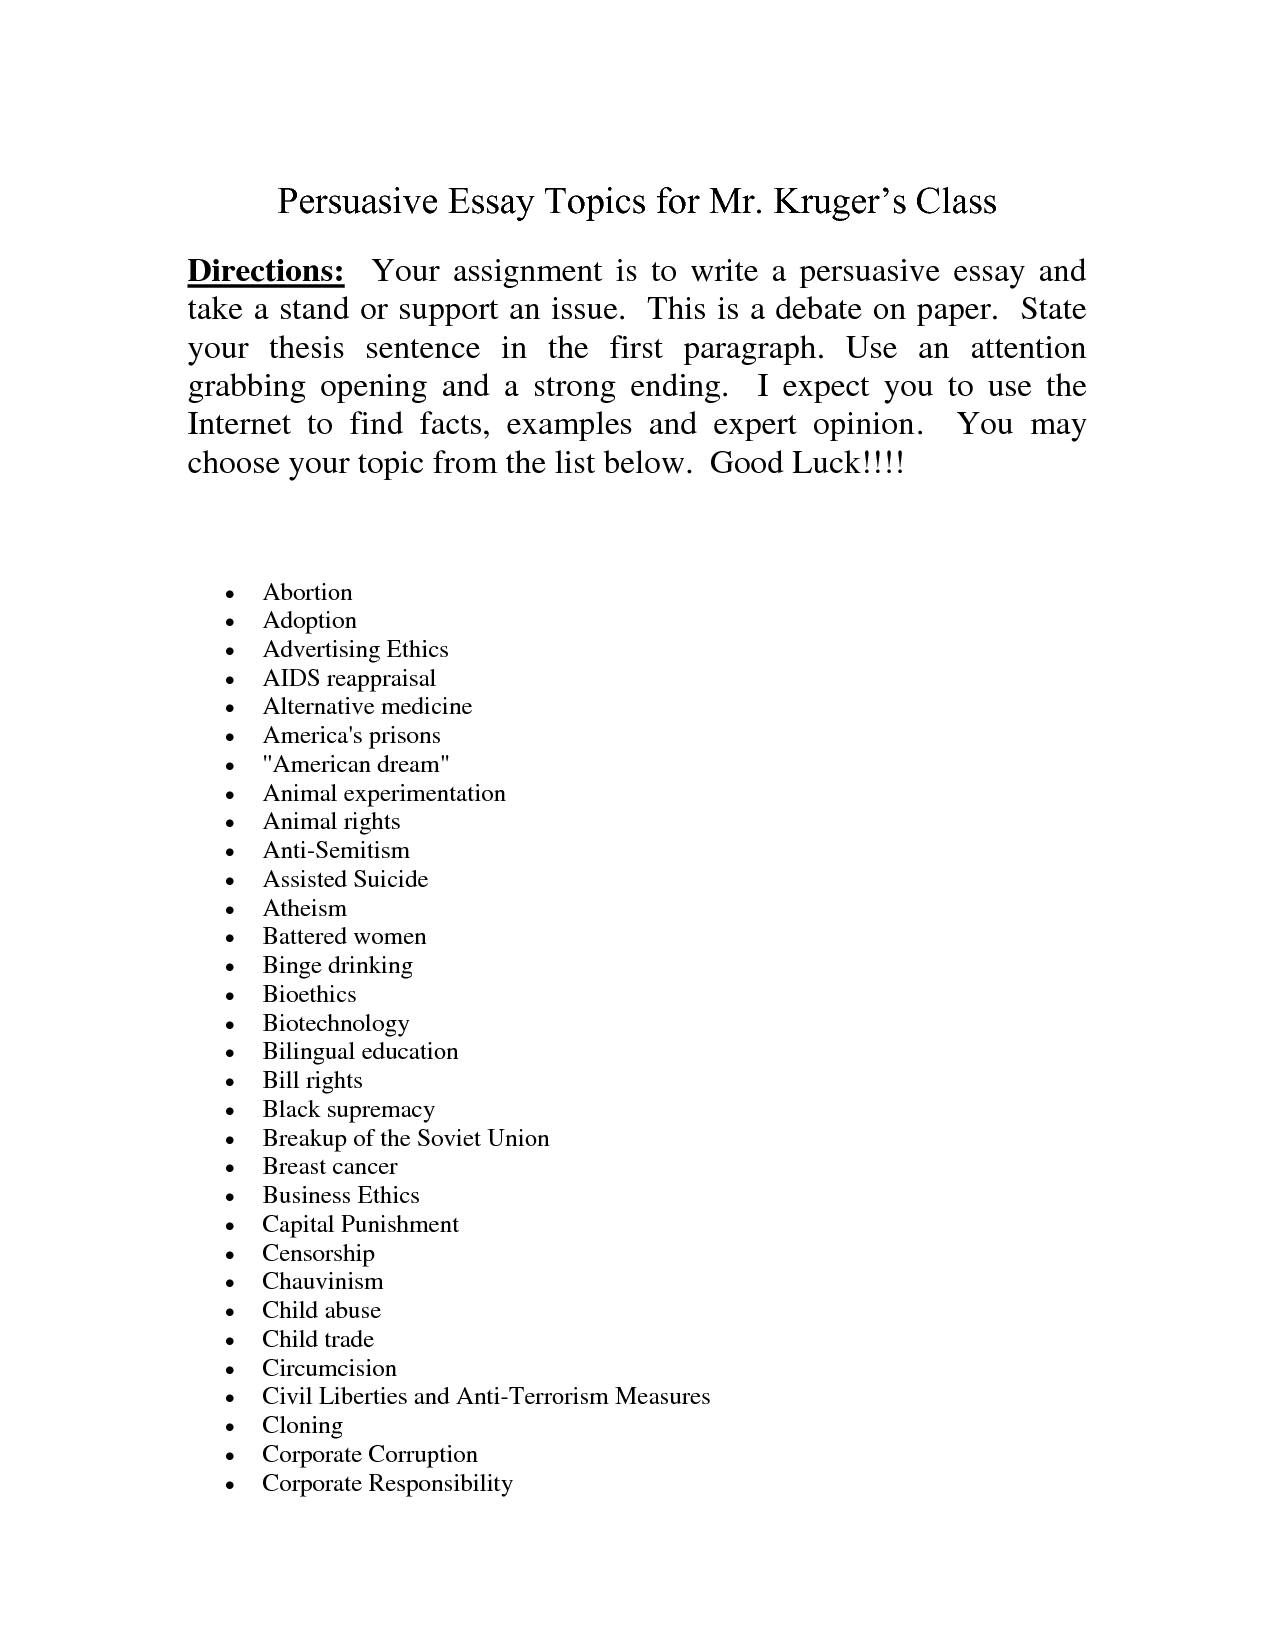 013 Argument Essay Student Samples Corporation Term Paper Writing List Of Argumentativepersuasive Topics Awesome Collection Strong Argumentative Best Topic Great College Good Research Gatsby Beautiful Persuasive Uk For Full